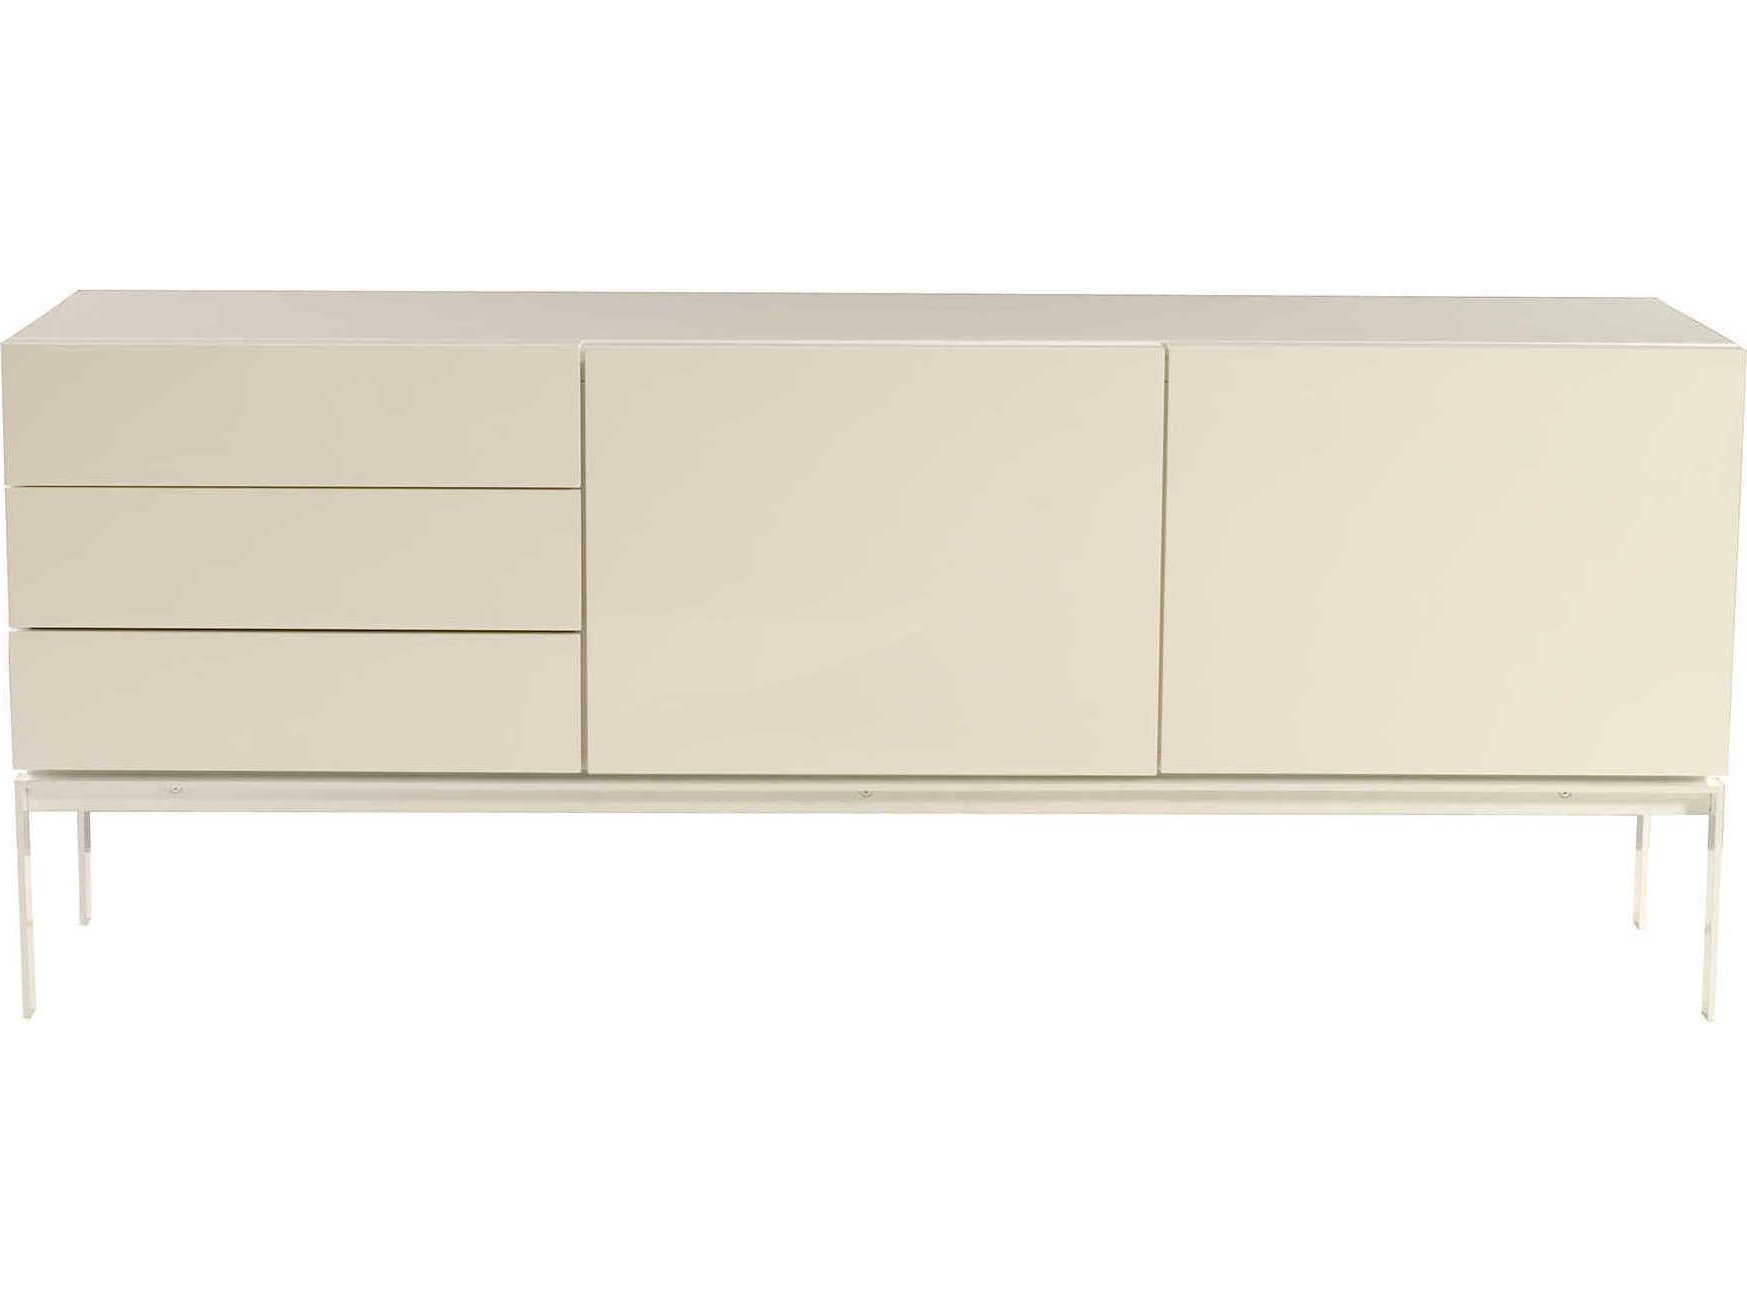 Temahome Glare High Gloss White Rectangular Buffet In 2019 With White Wood And Chrome Metal High Gloss Buffets (View 17 of 20)